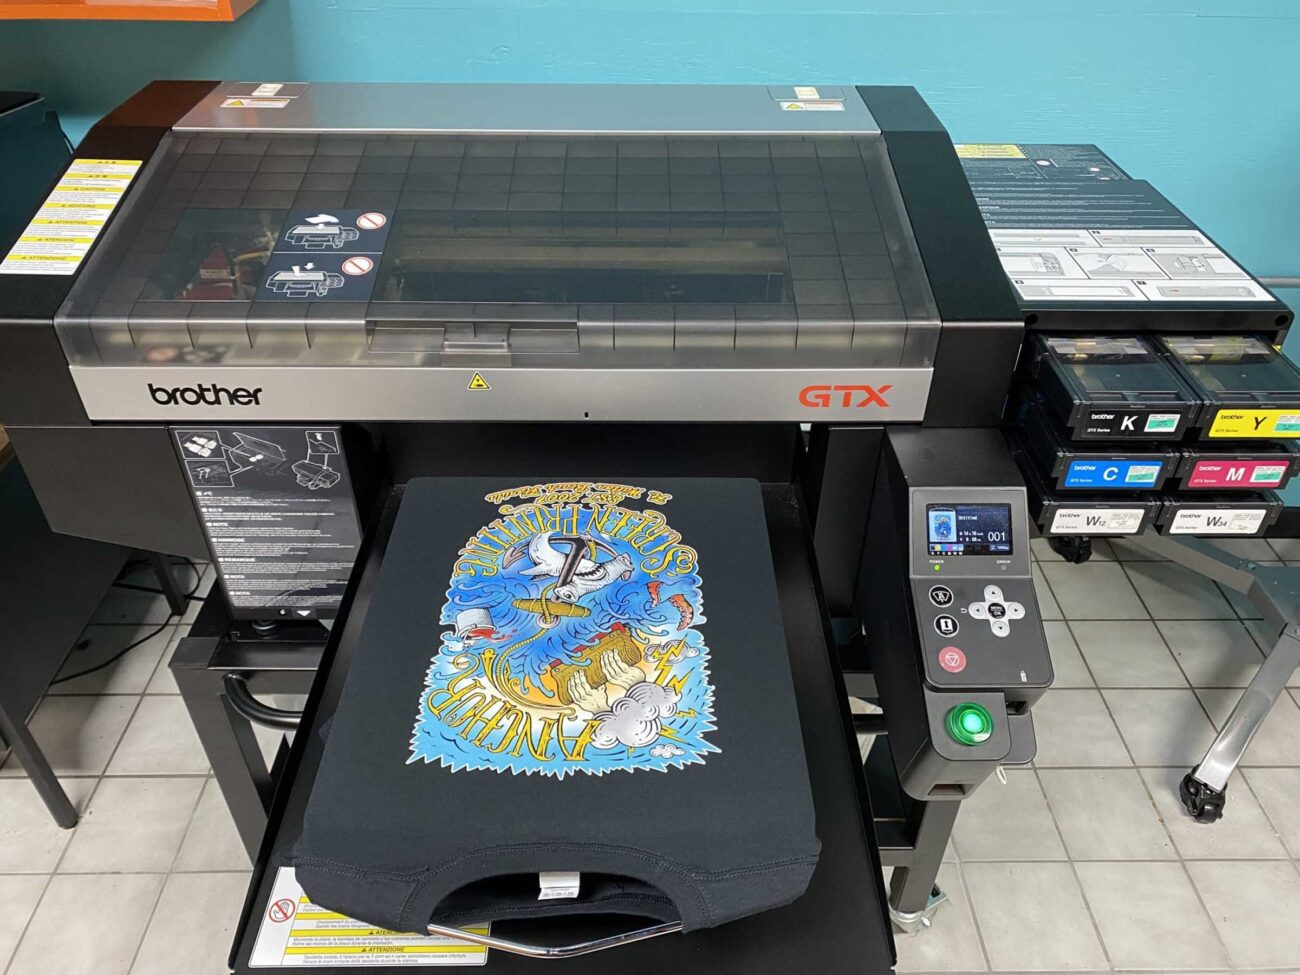 Are you looking for a new printing solution? Check out DTG or Direct-to-Garment! Dive into the details of this revolutionary new printing technology here!